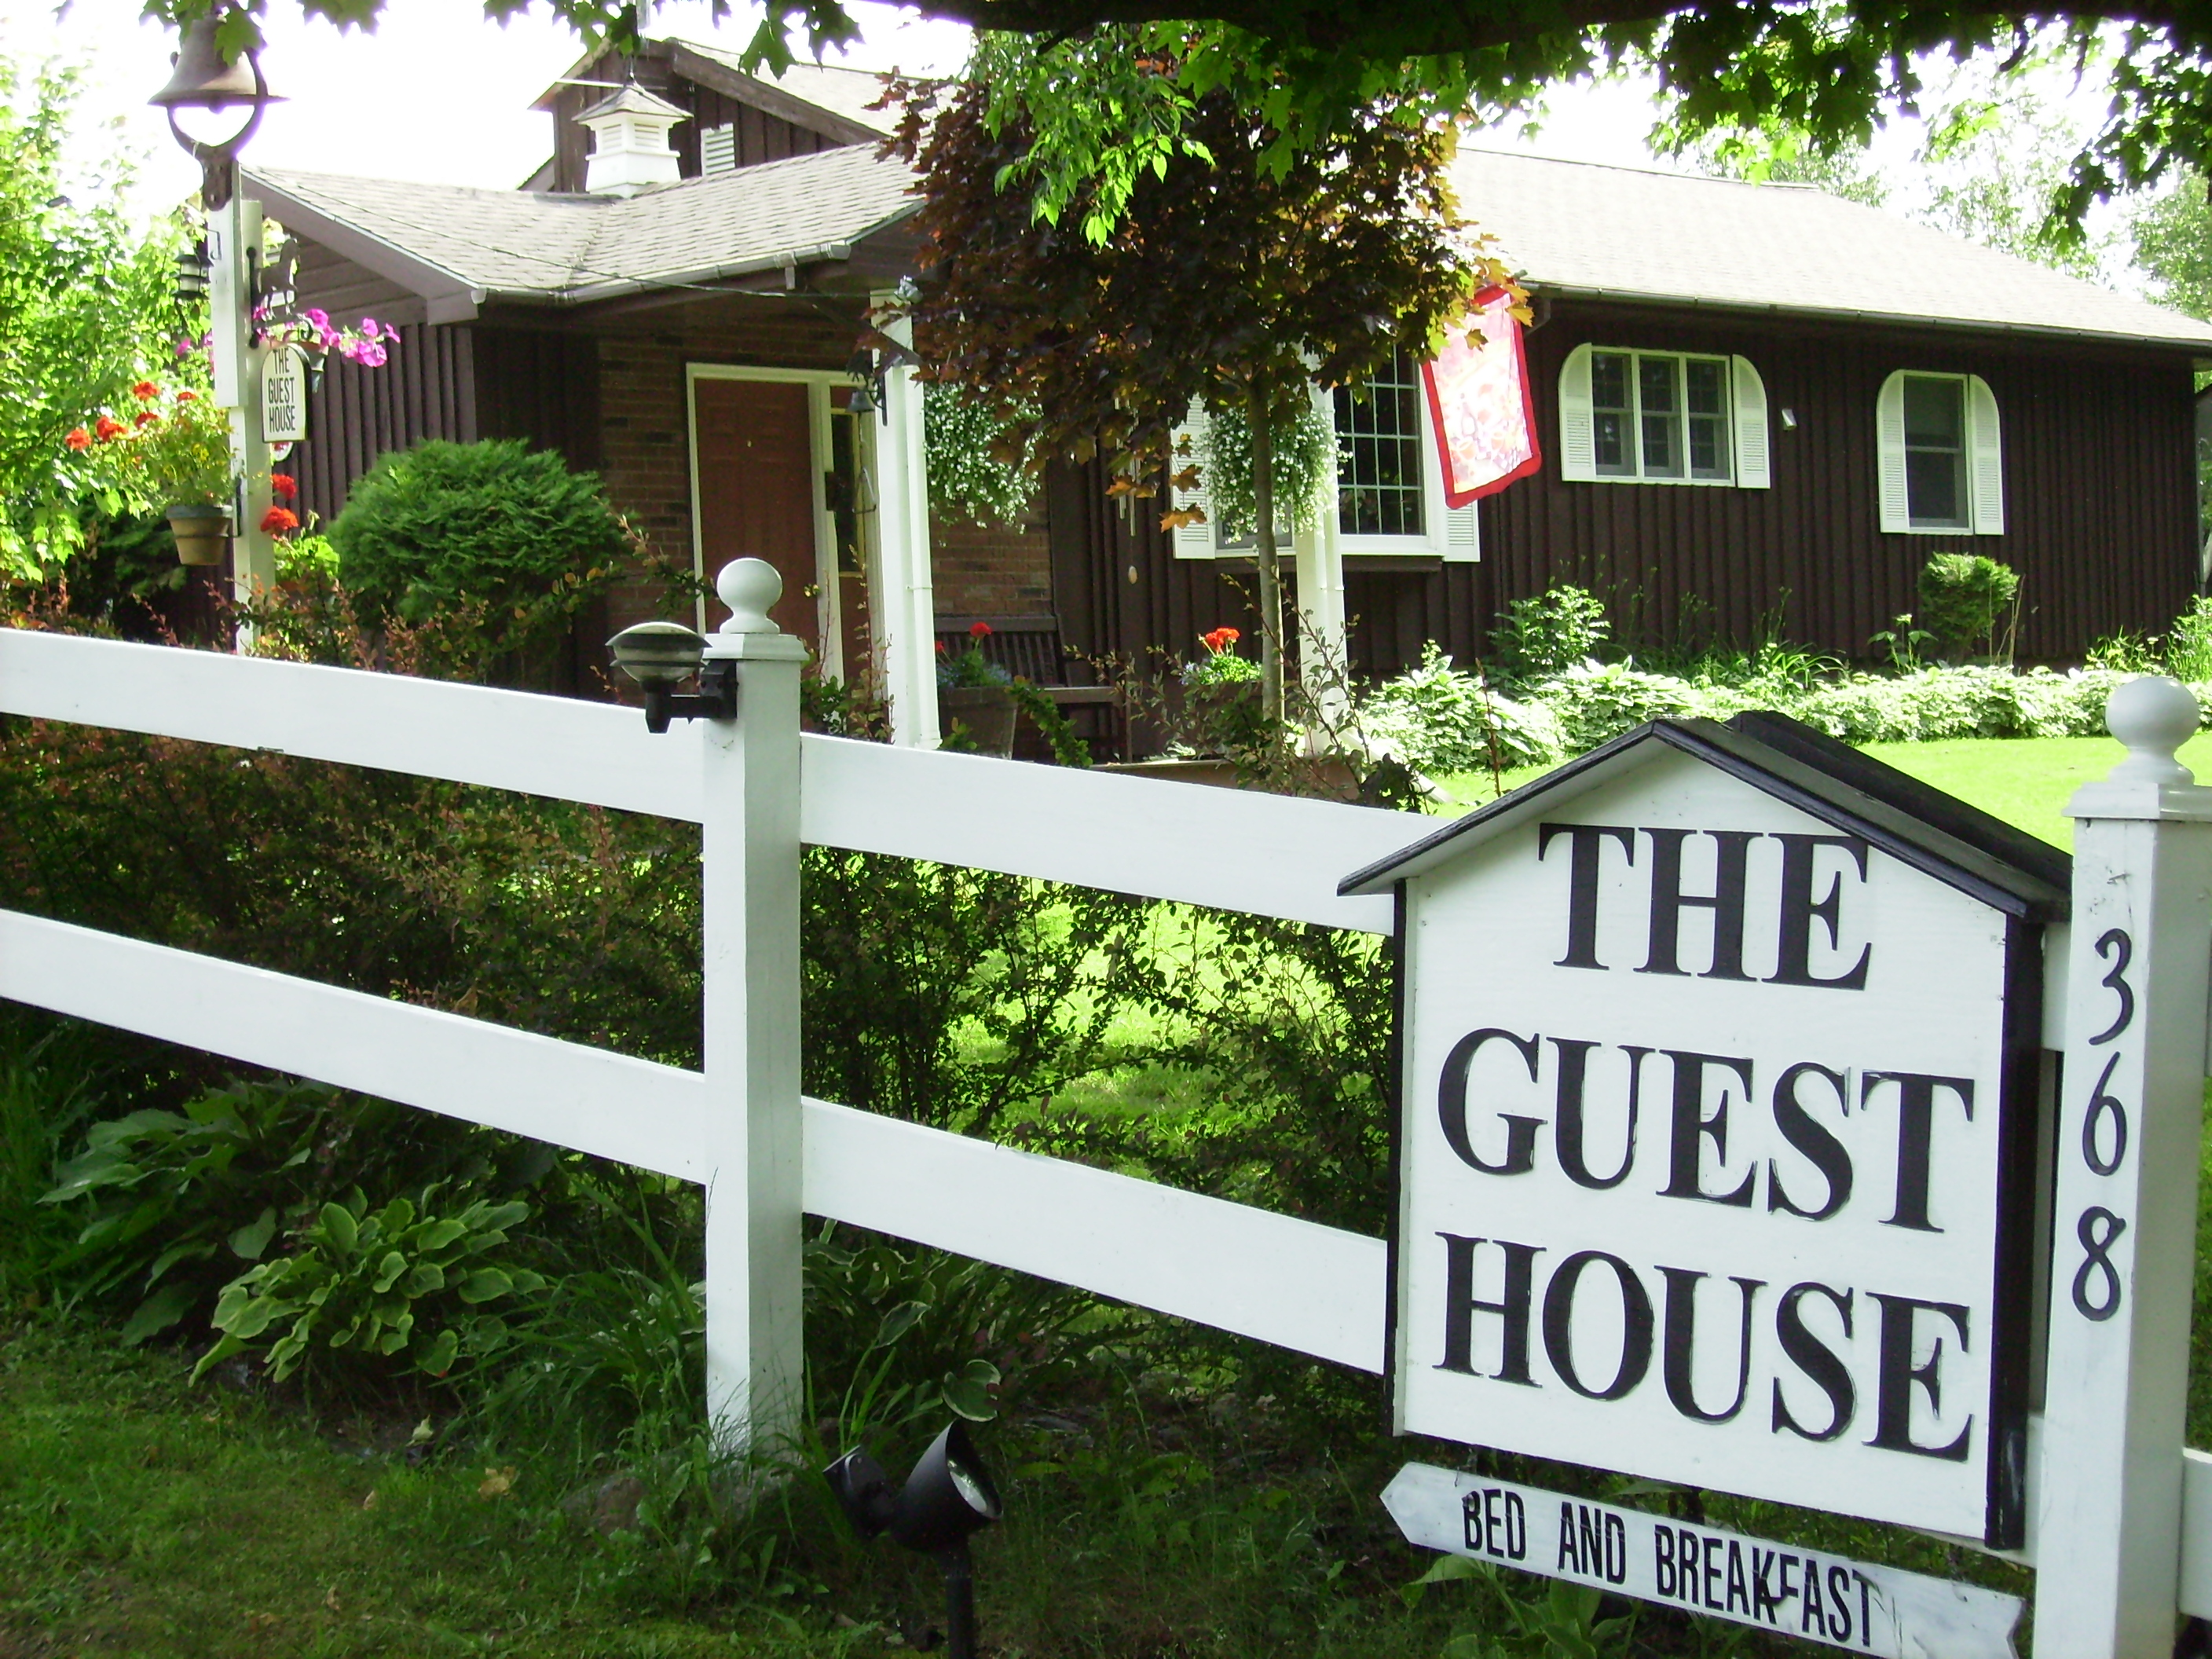 Bed and Breakfast. NNY Guest House